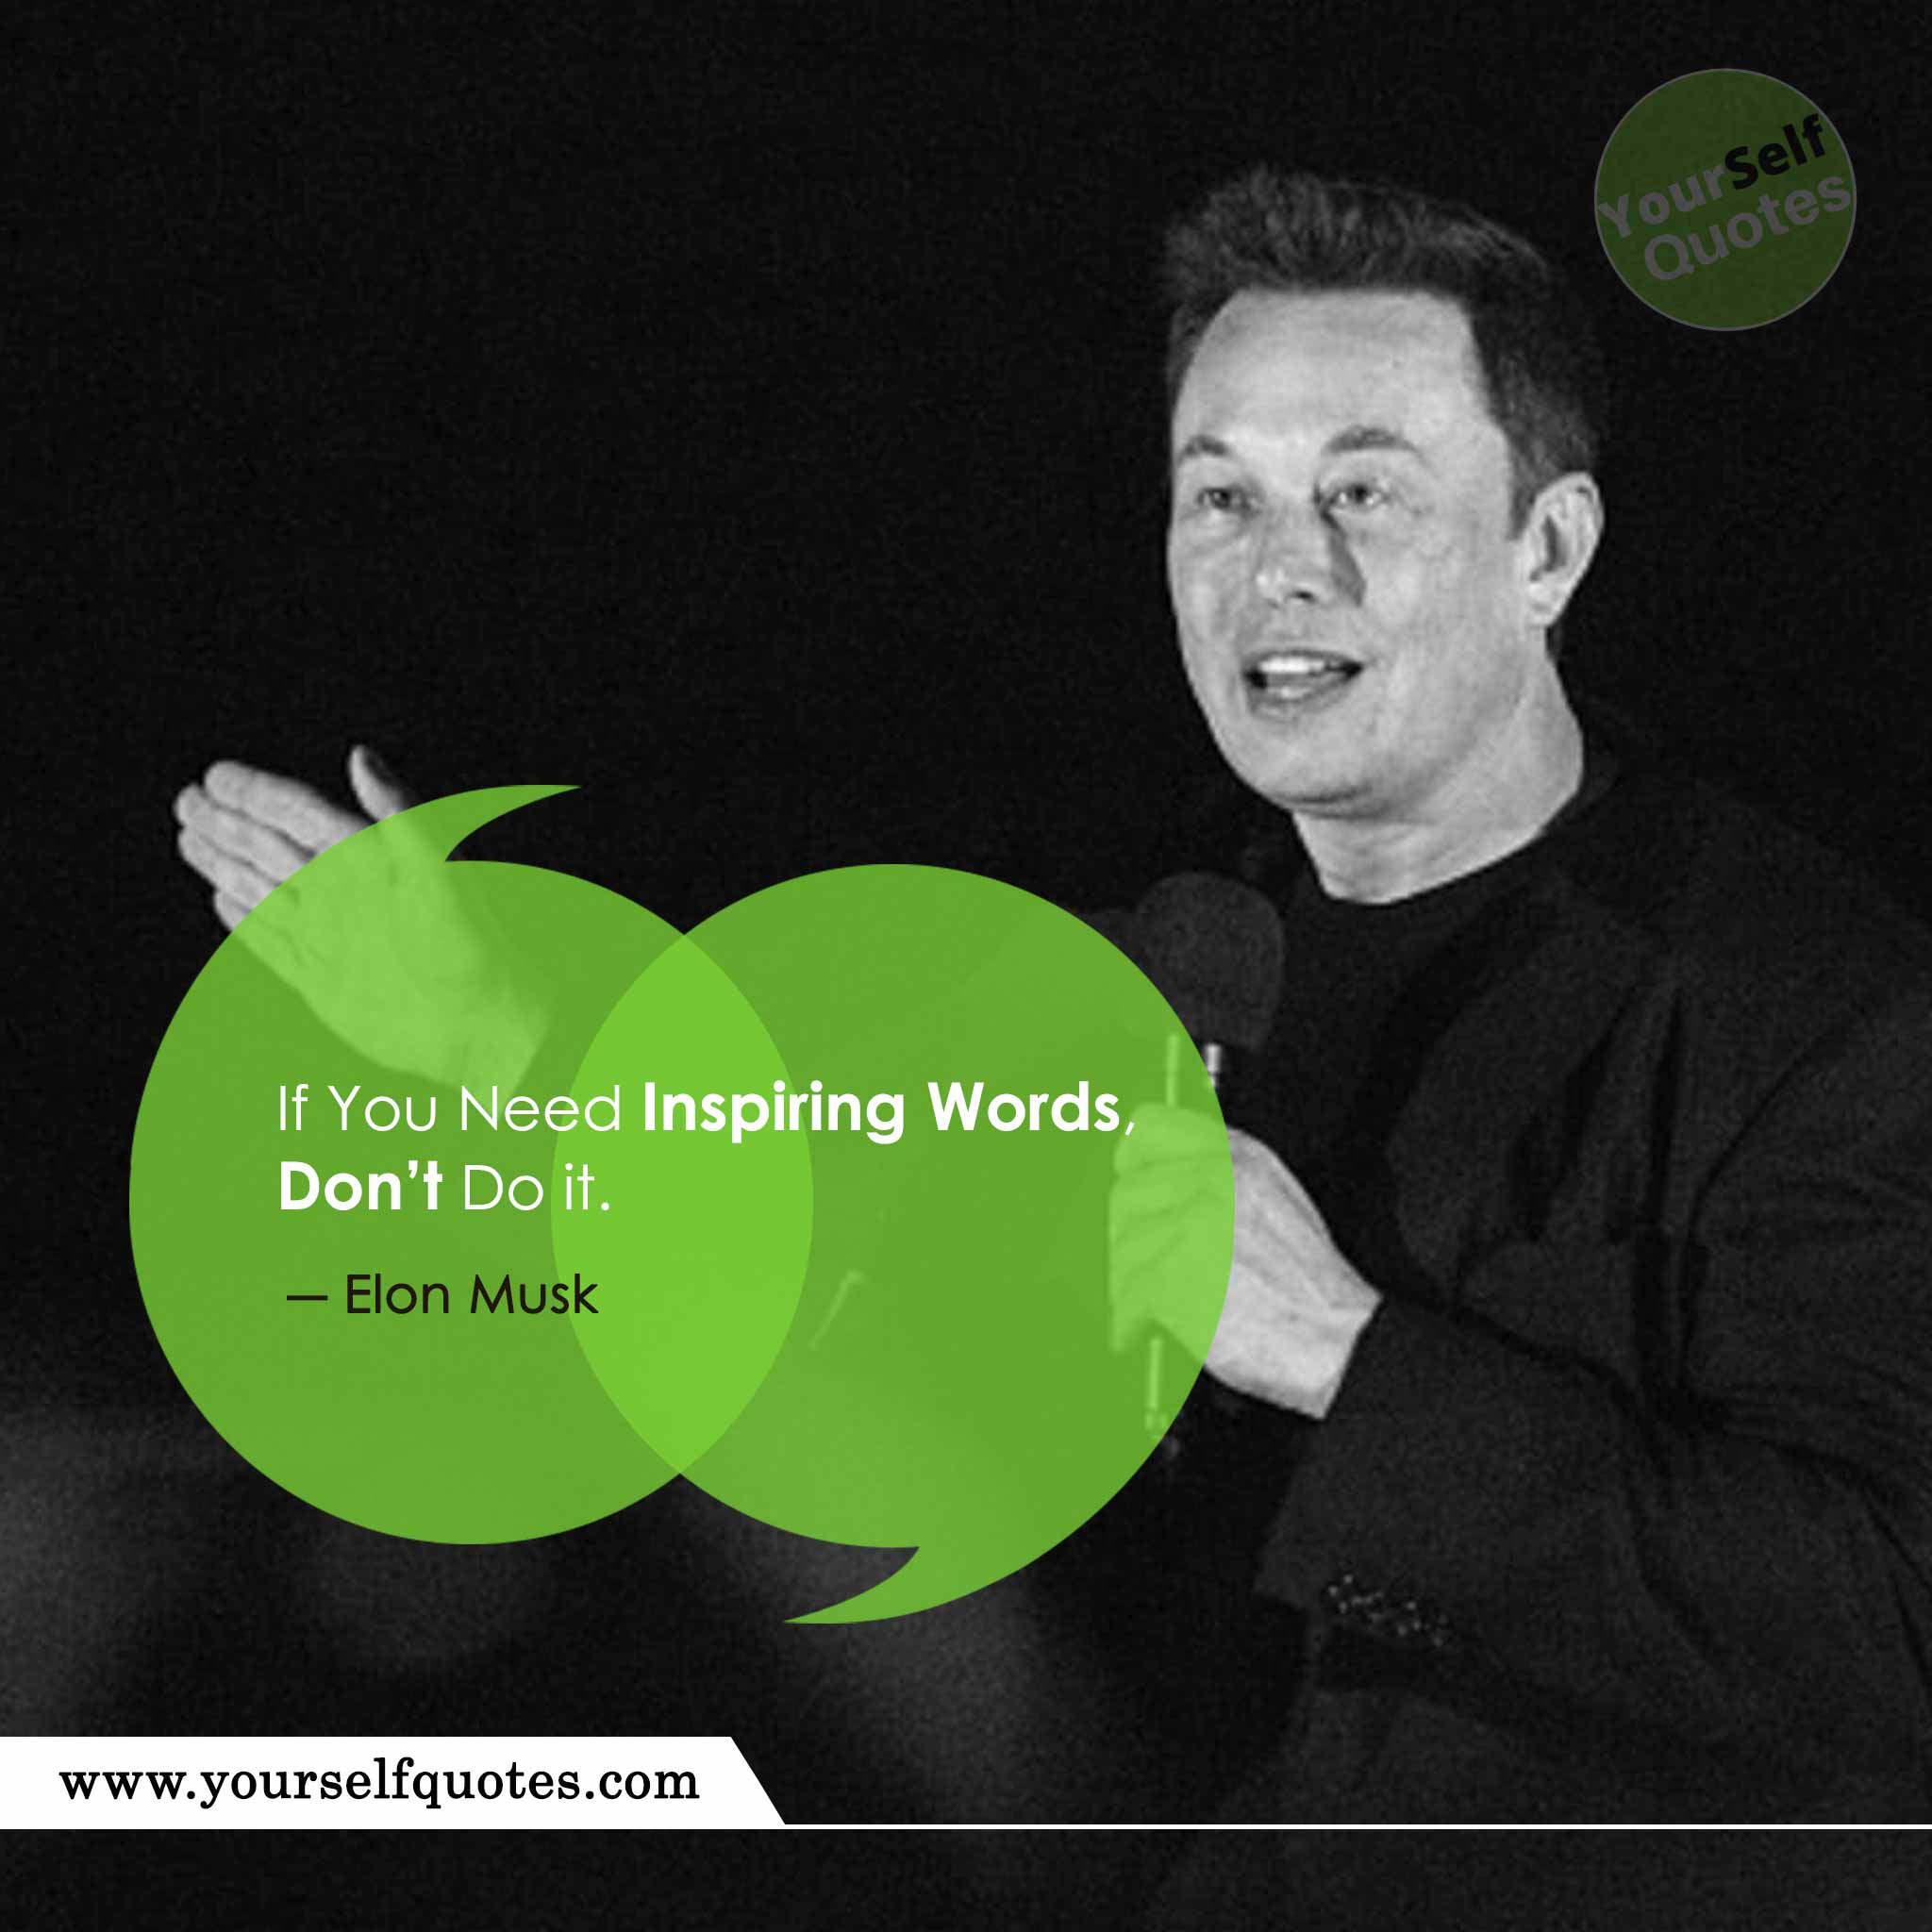 Elon Musk inspiring Words Quote